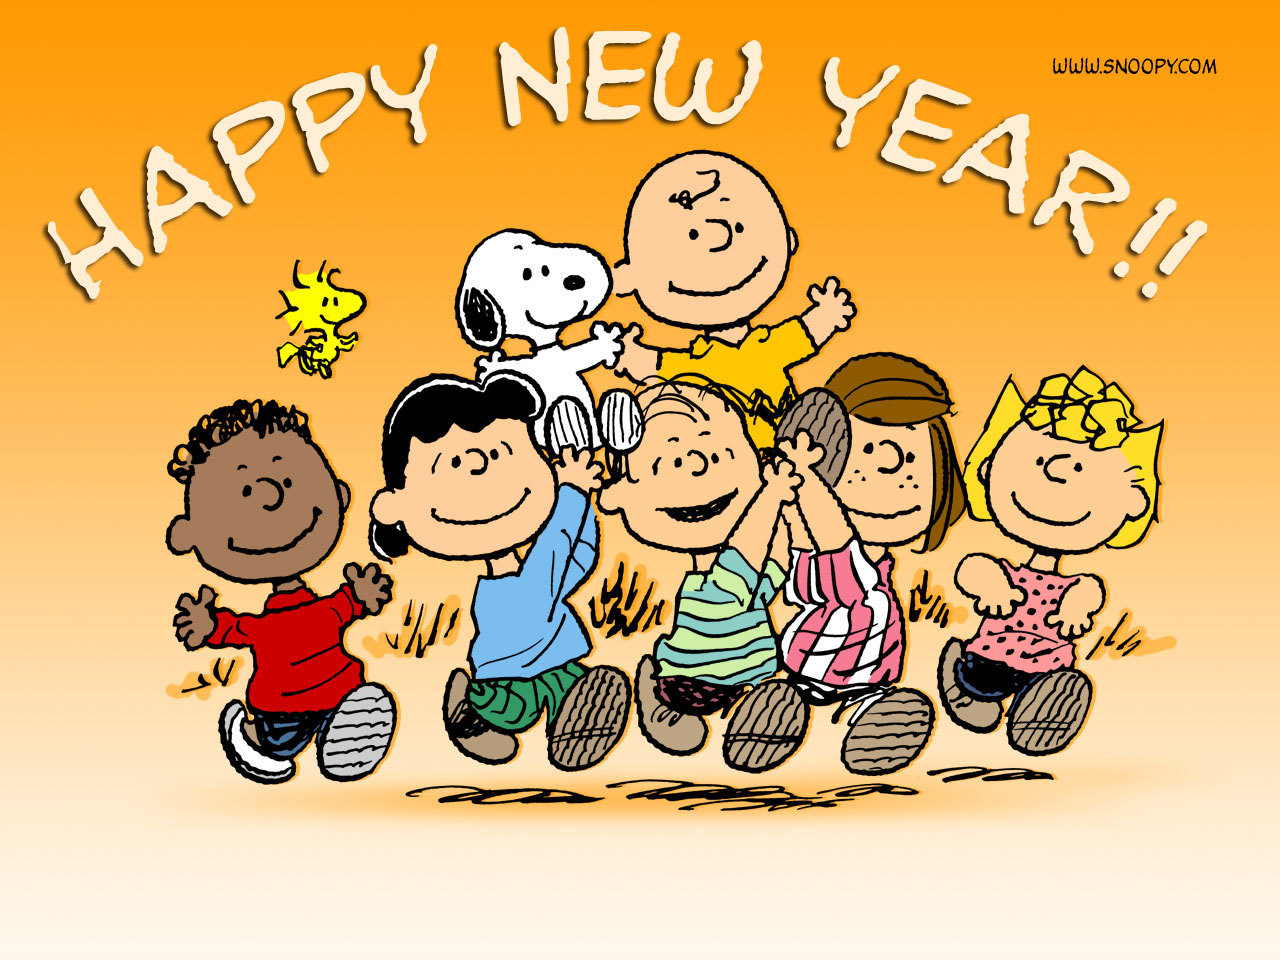 http://3.bp.blogspot.com/_jgQFPPeMTek/TR3-mg9TqOI/AAAAAAAABKU/vI5ETfKhVu4/s1600/Happy_New_Year%252C_Charlie_Brown%2521.jpg